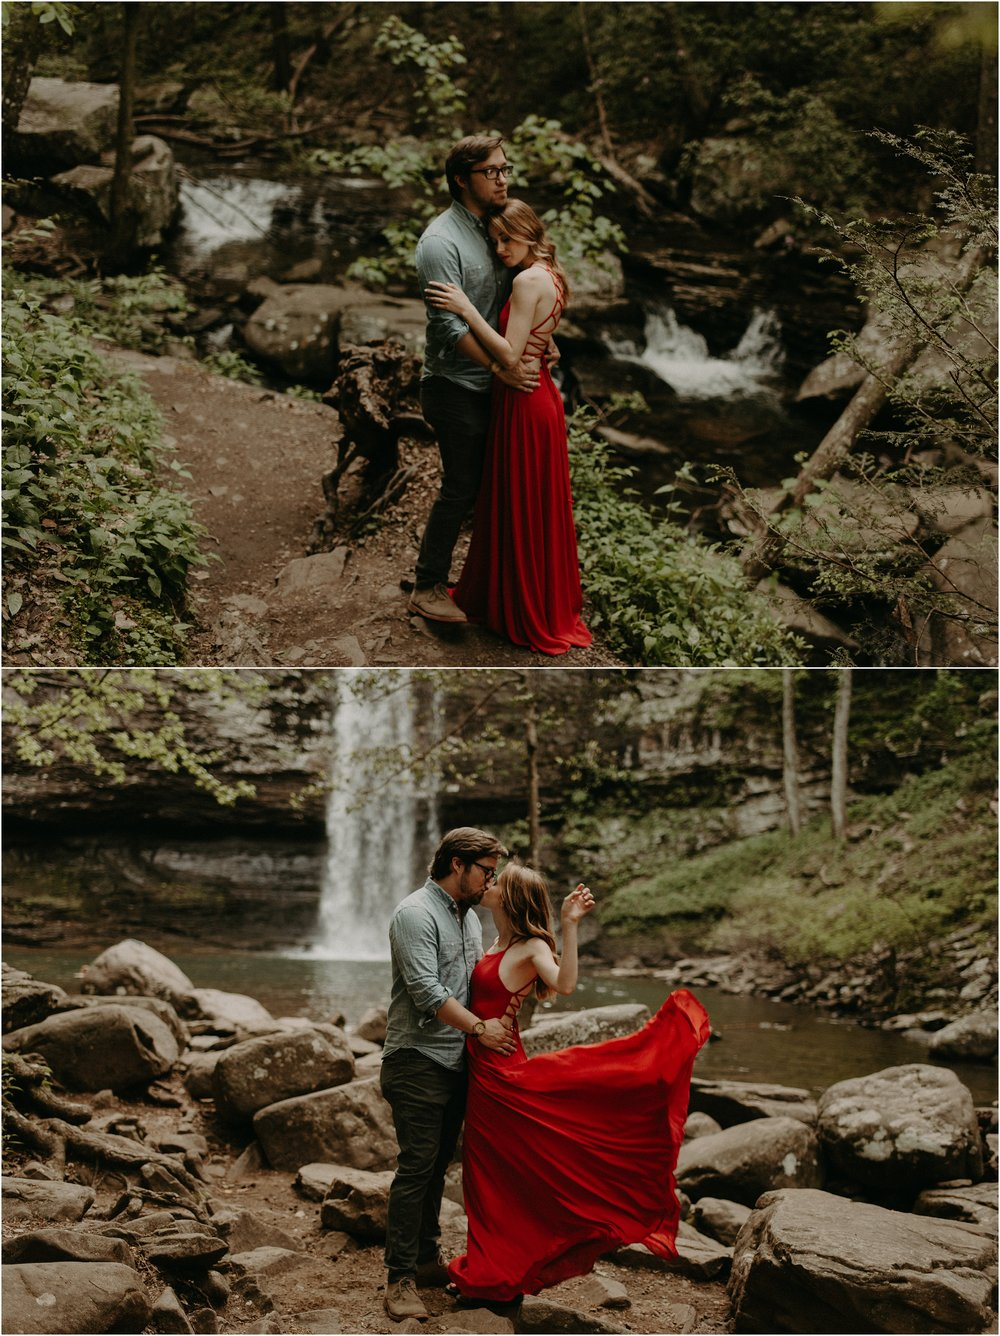 The bride wears a flowing red dress as she and her fiance embrace in front of the waterfalls at Cloudland Canyon state park in Georgia